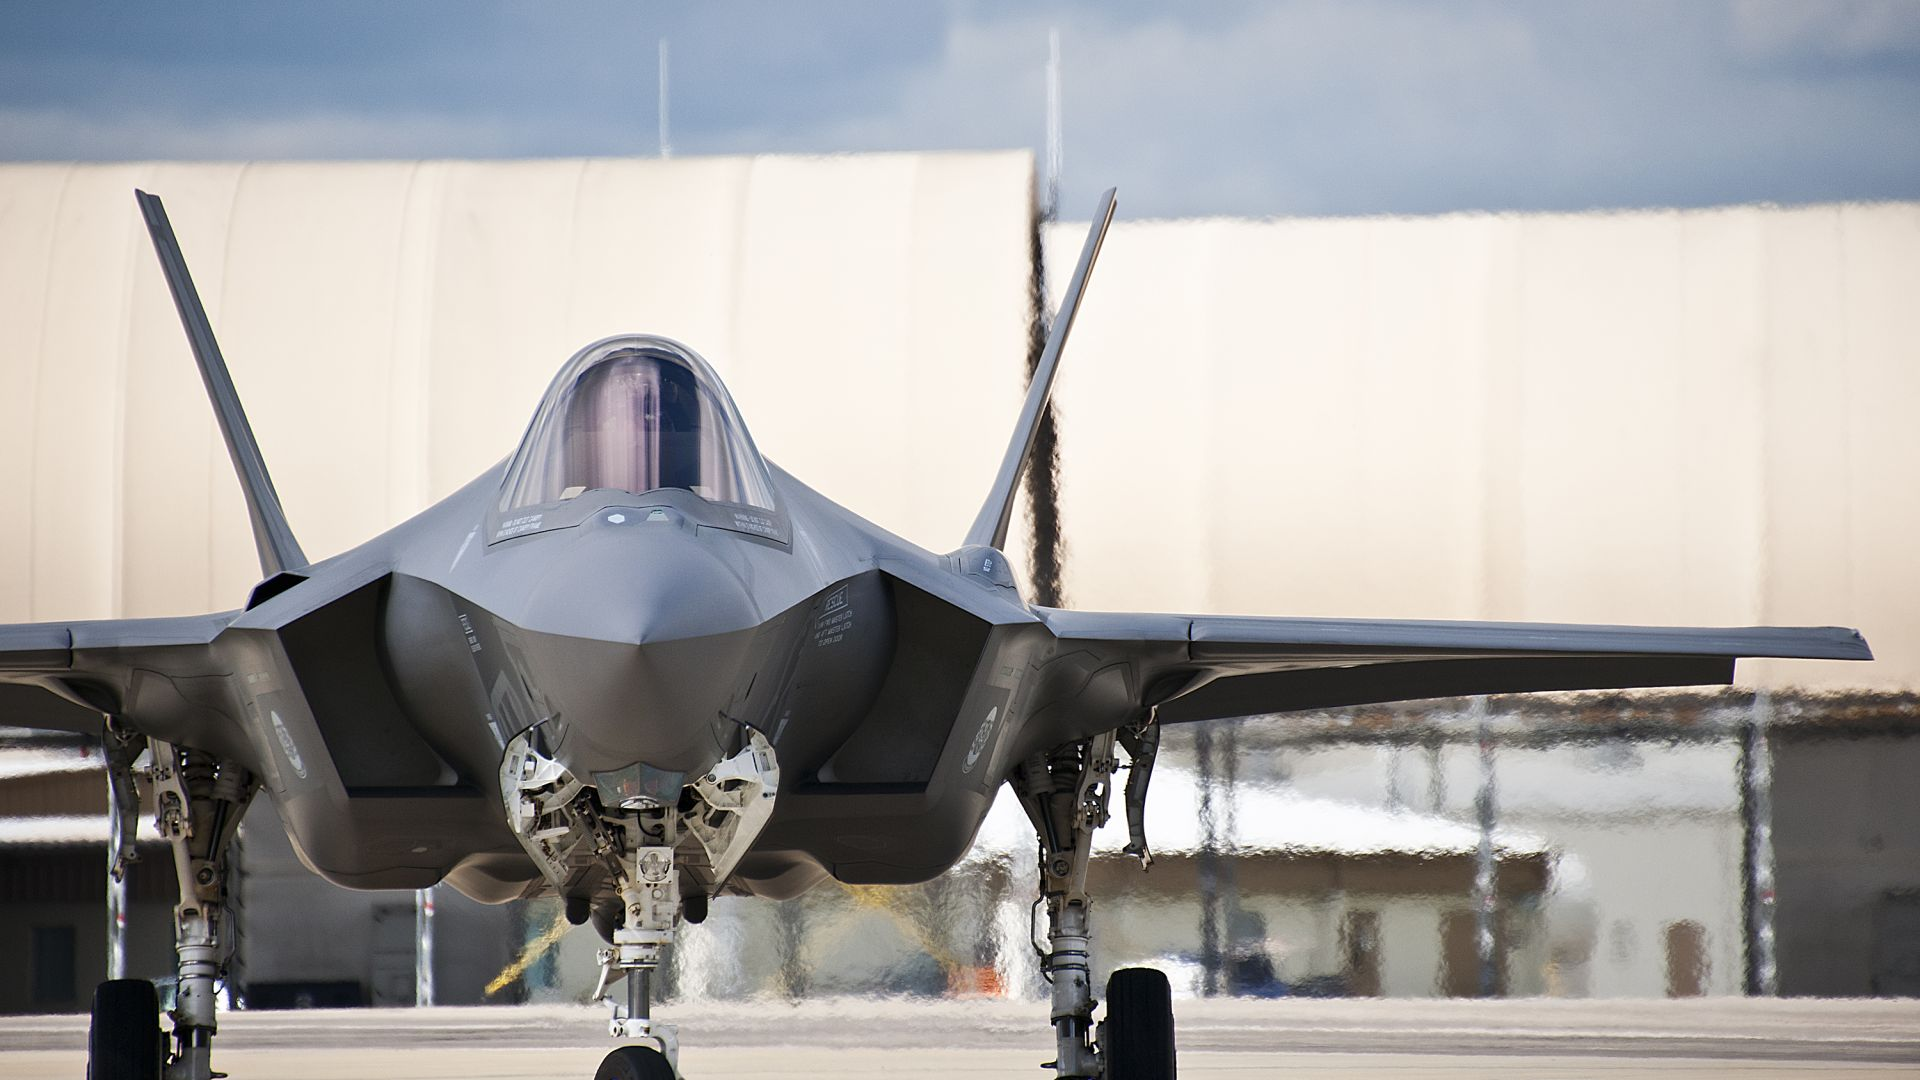 F-35, Lightning II, Lockheed, fighter, US Army, U.S. Air Force (horizontal)